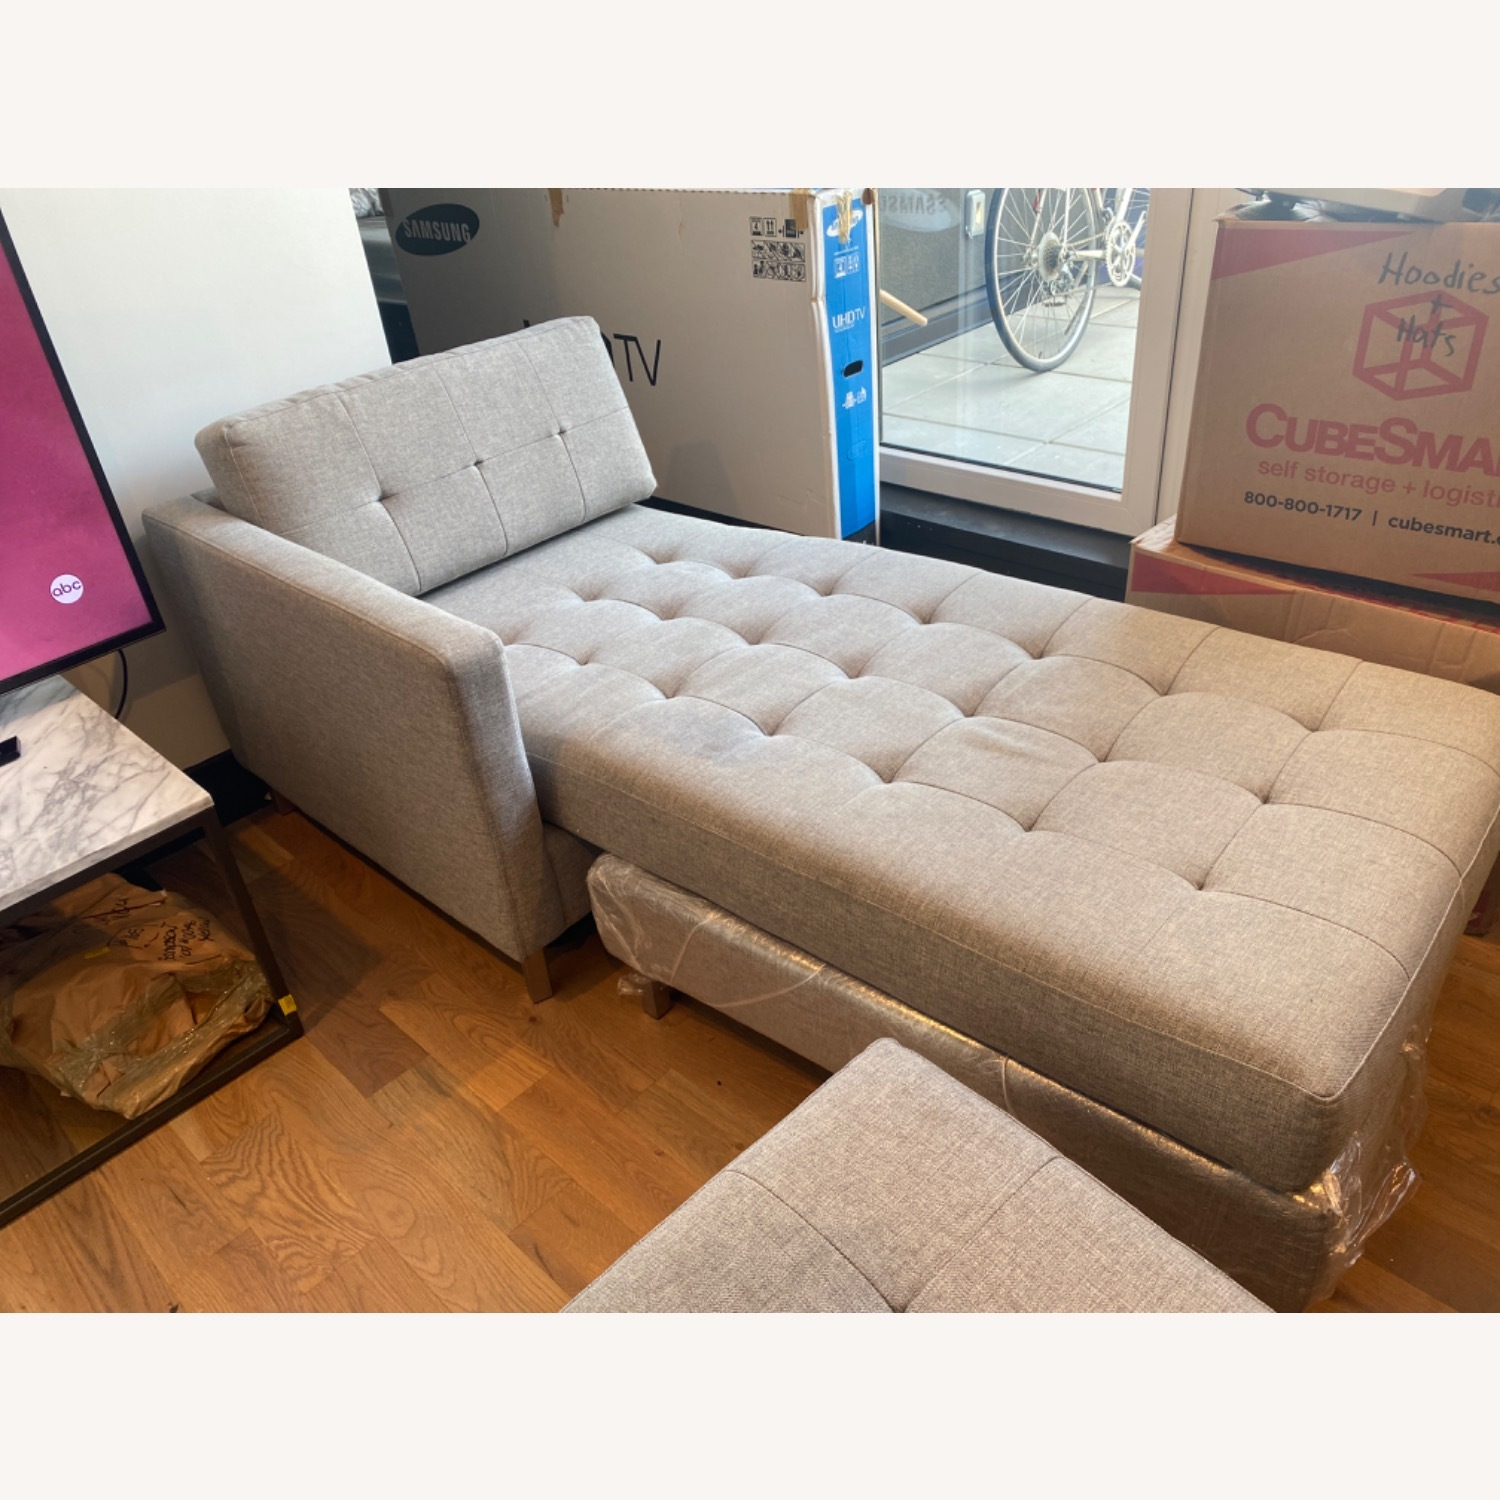 CB2 Holden Grey Chaise Lounge - image-2